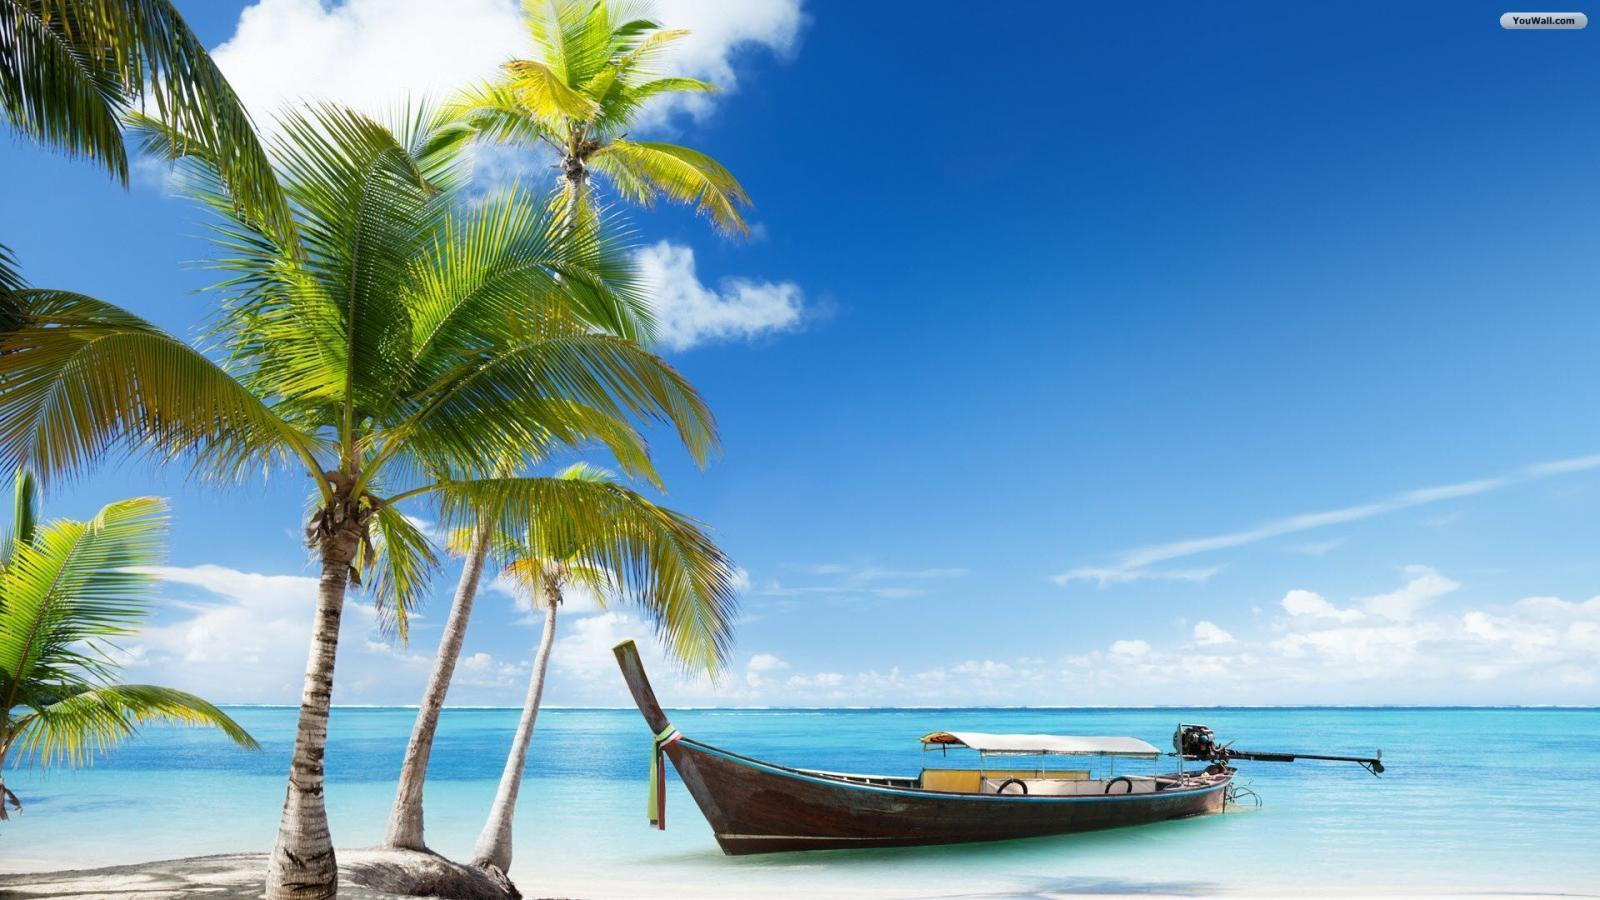 Bon Summer Beach Backgrounds Hq Images 12 HD Wallpapers | Hdimges.